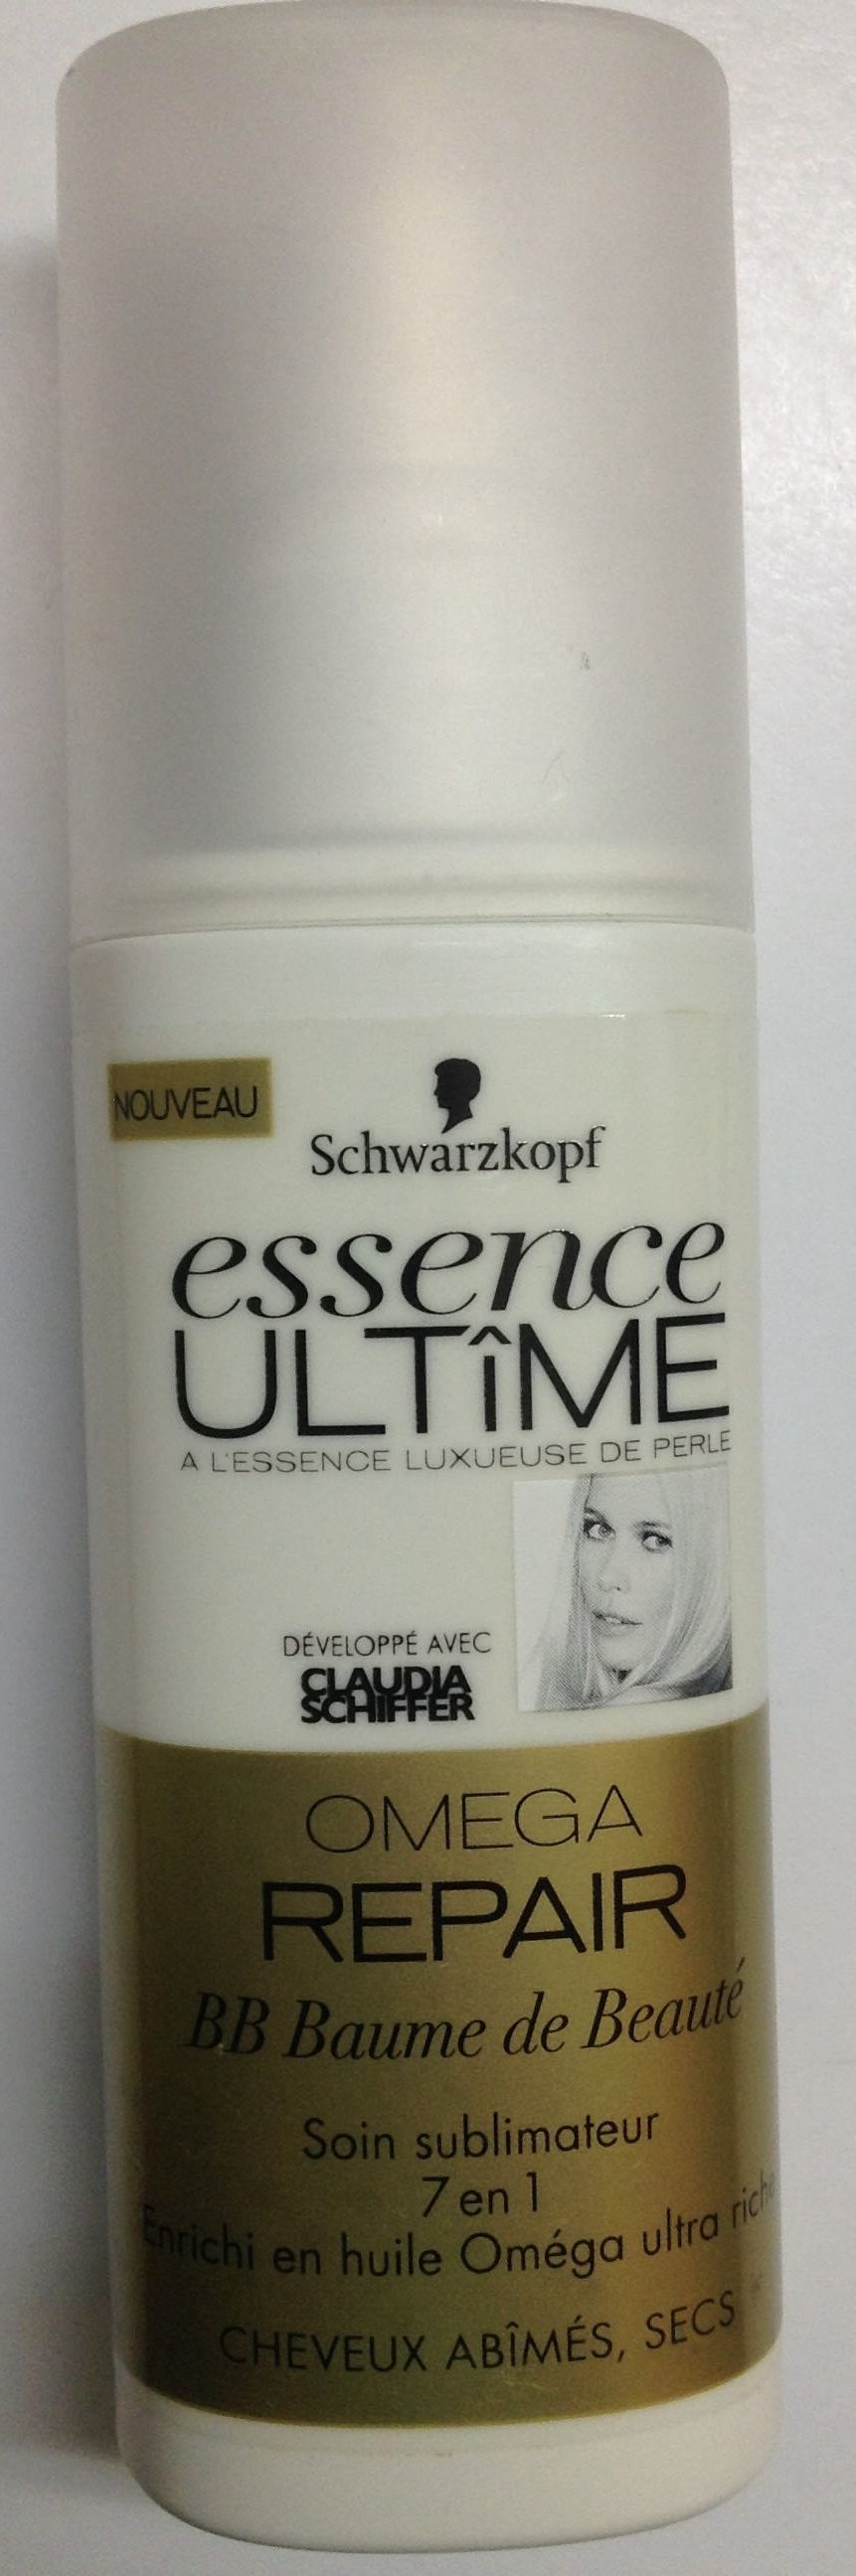 Essence Ultime Omega Repair - Produit - fr